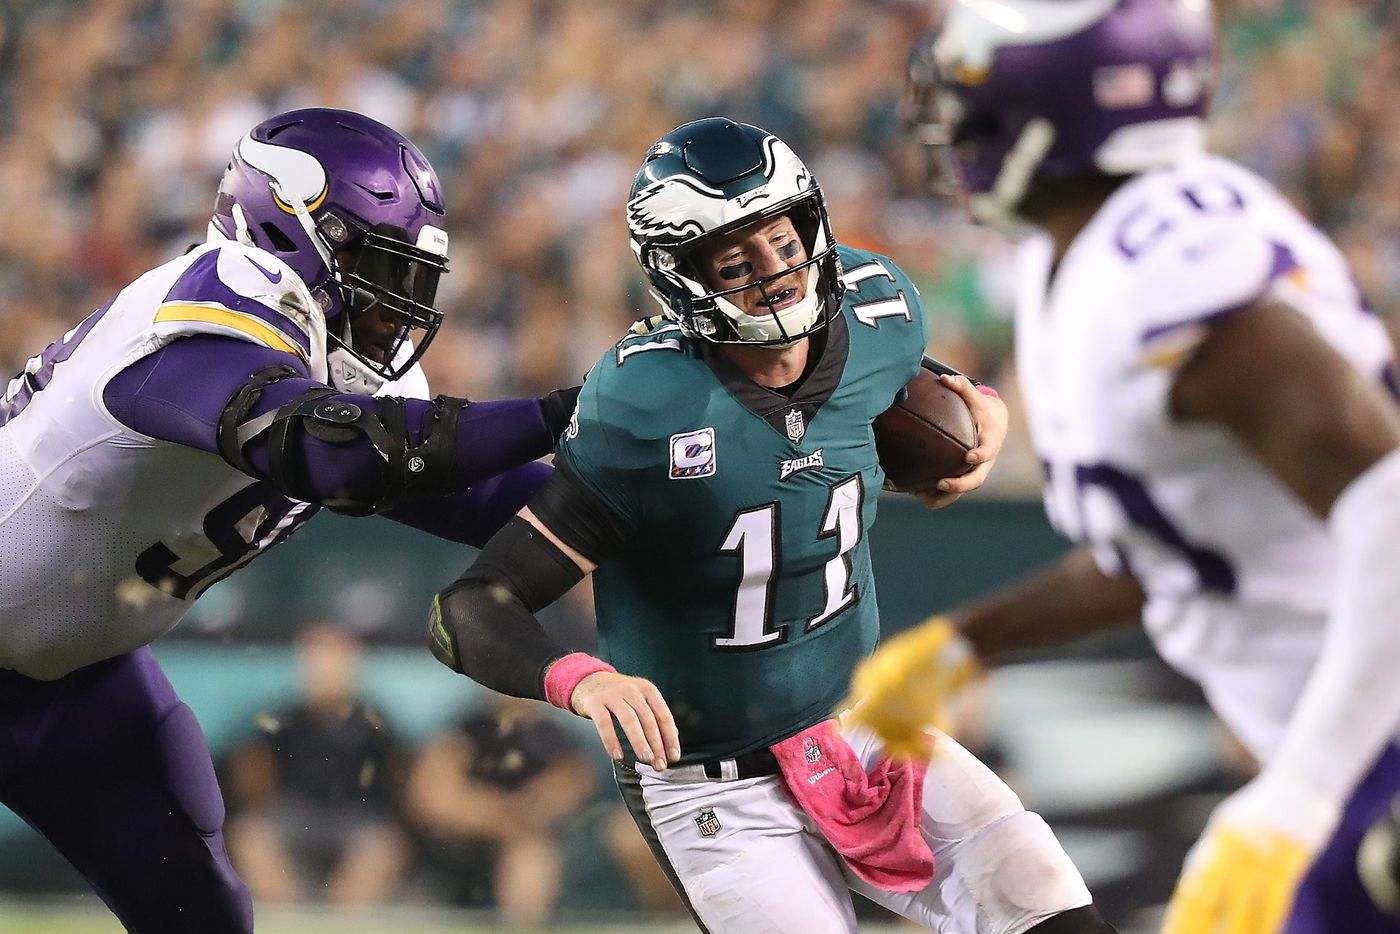 McCoy to Eagles: 5 thoughts on a potential trade